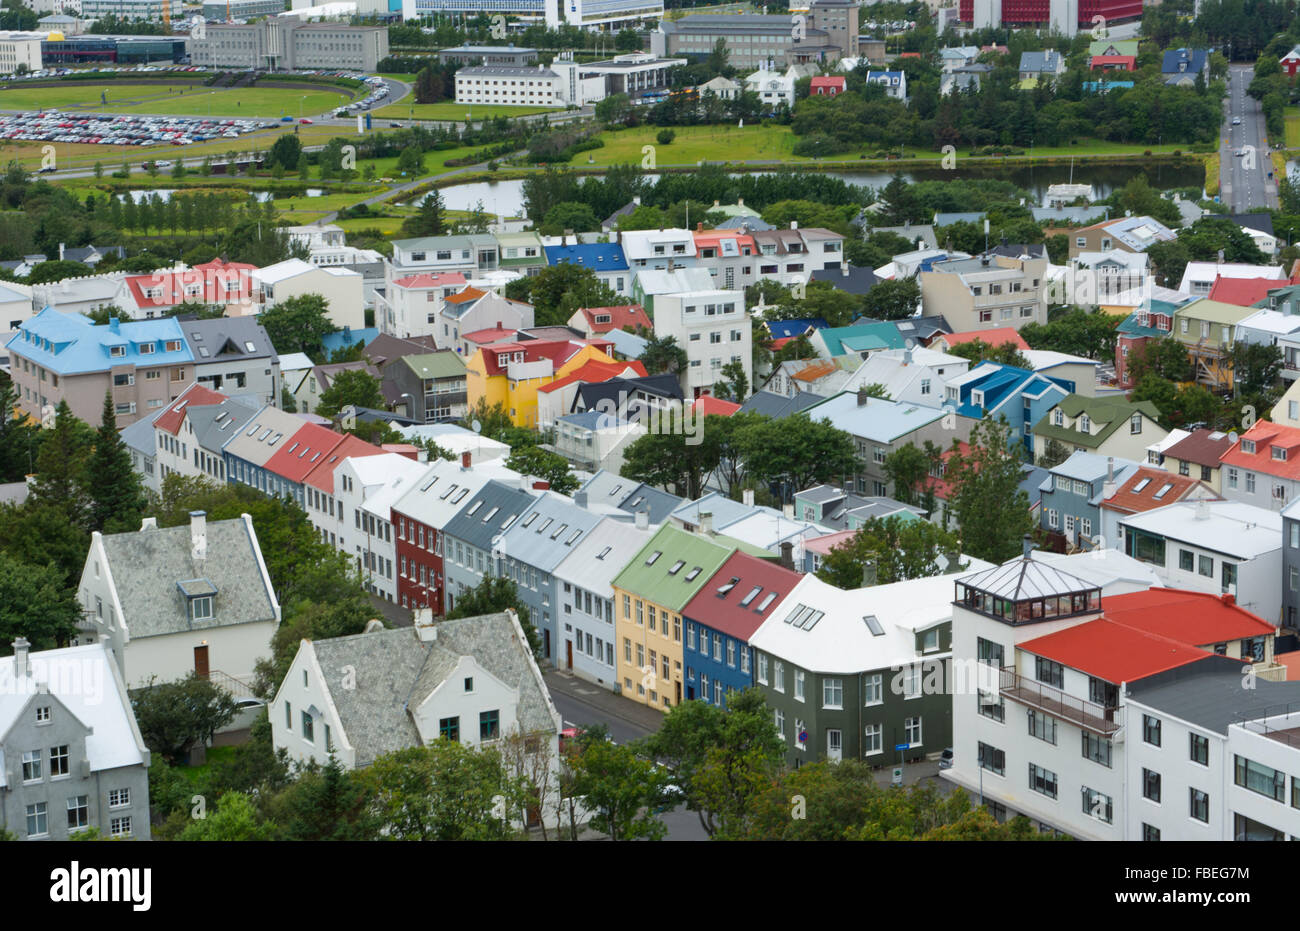 Reykjavik Iceland downtown houses from above in Hallgrims Church of colorful neighborghood houses - Stock Image